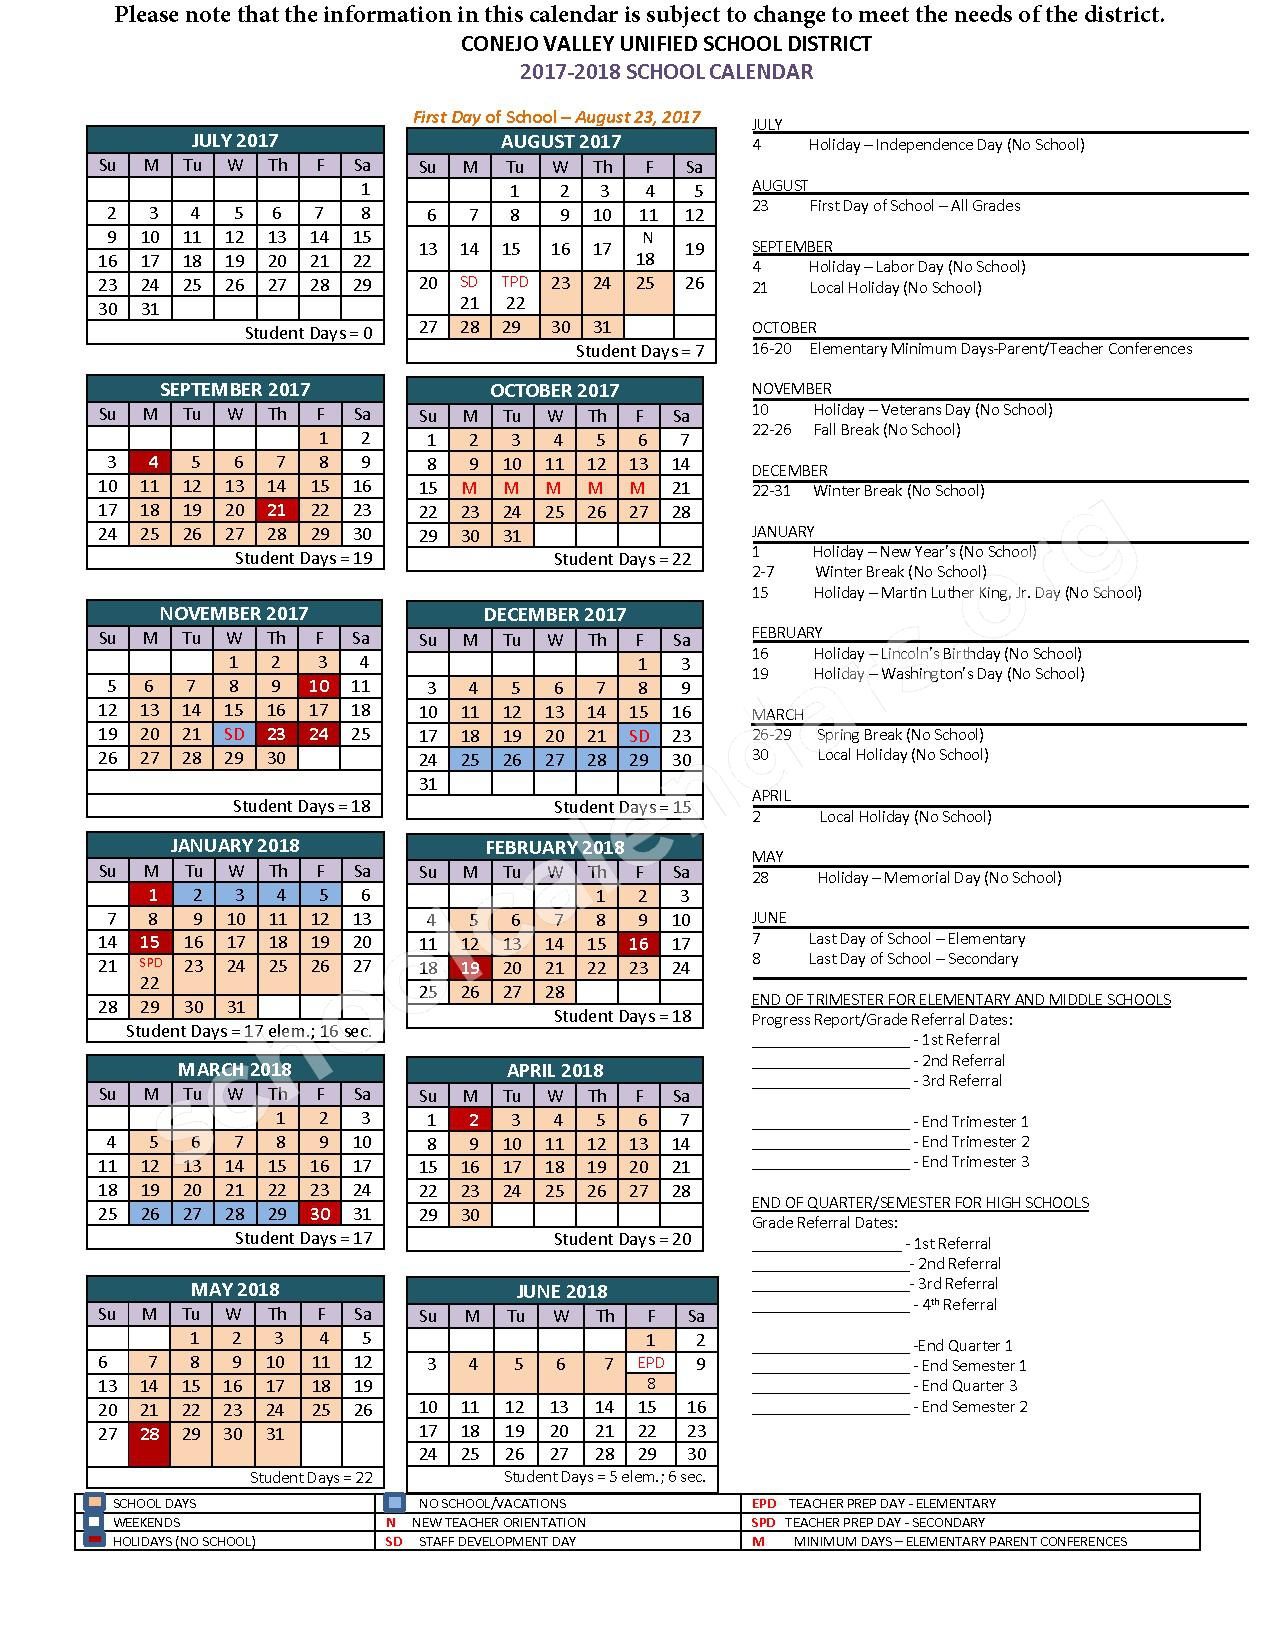 2017 - 2018 School Calendar – Conejo Valley Unified School District – page 1